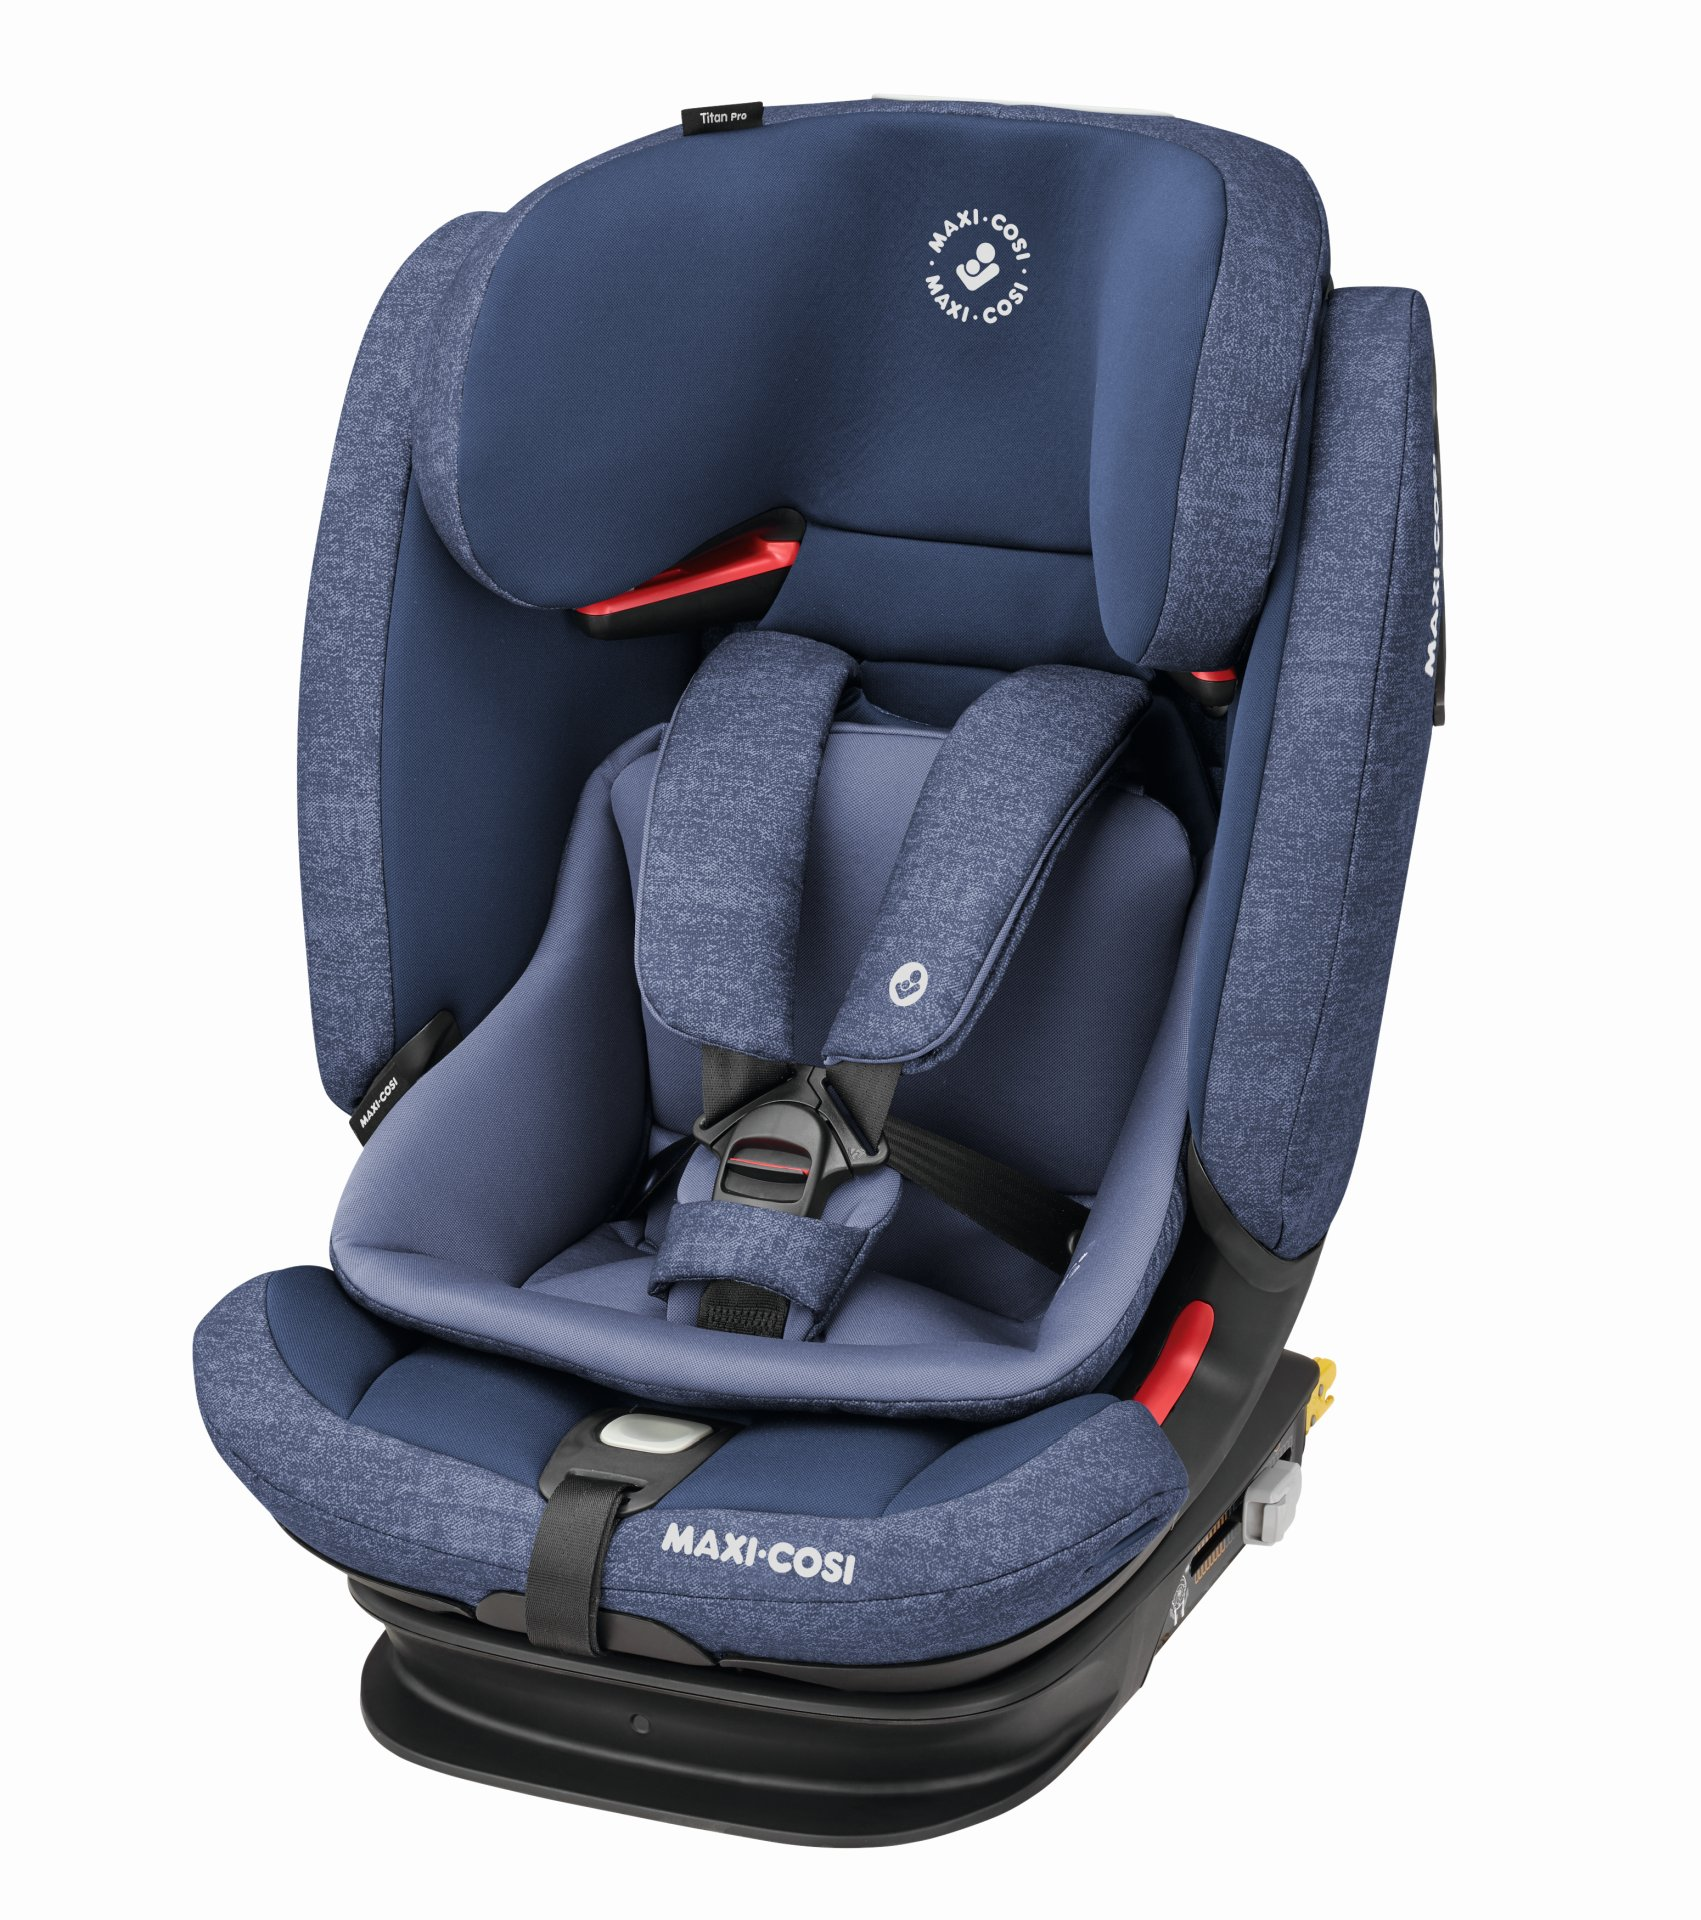 maxi cosi child car seat titan pro buy at kidsroom car seats. Black Bedroom Furniture Sets. Home Design Ideas